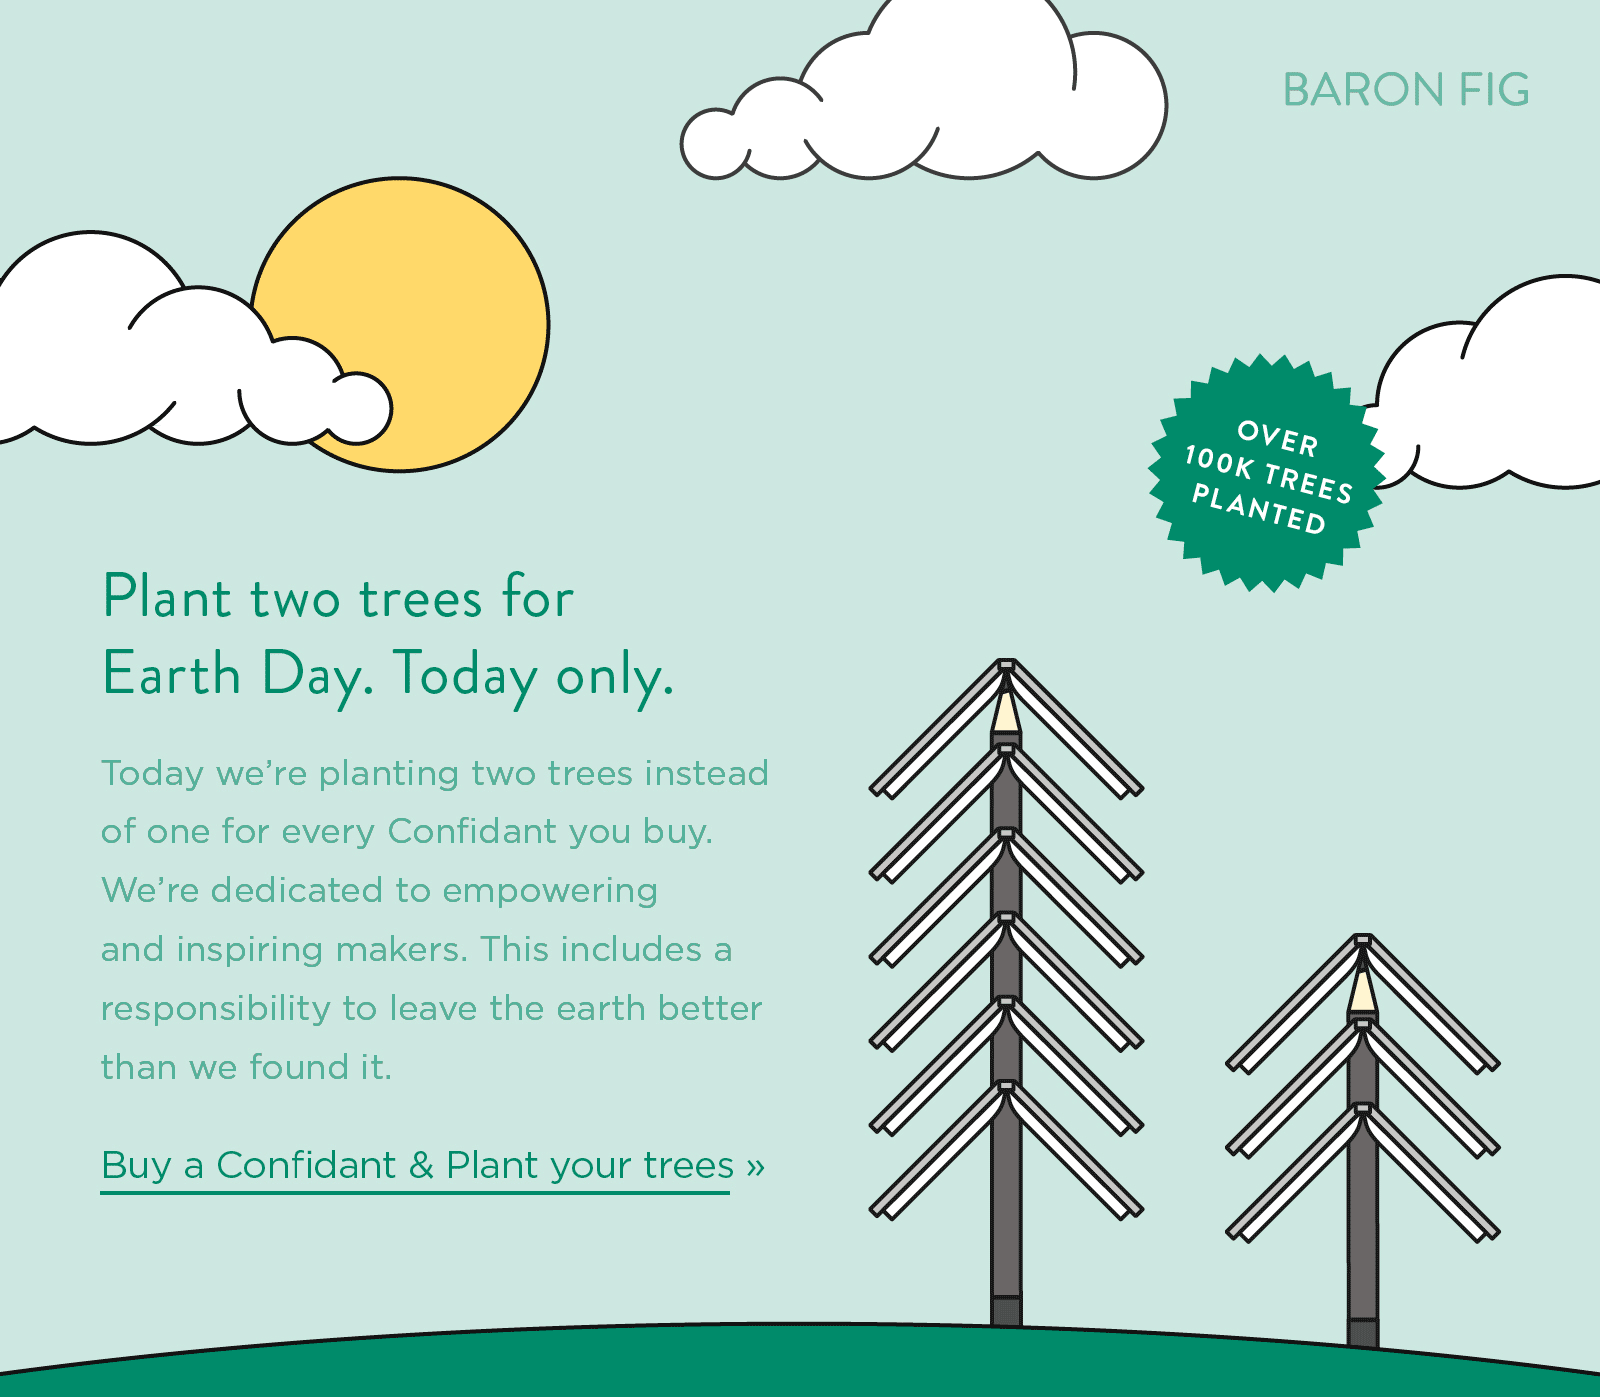 Plant two trees for Earth Day. Today only.